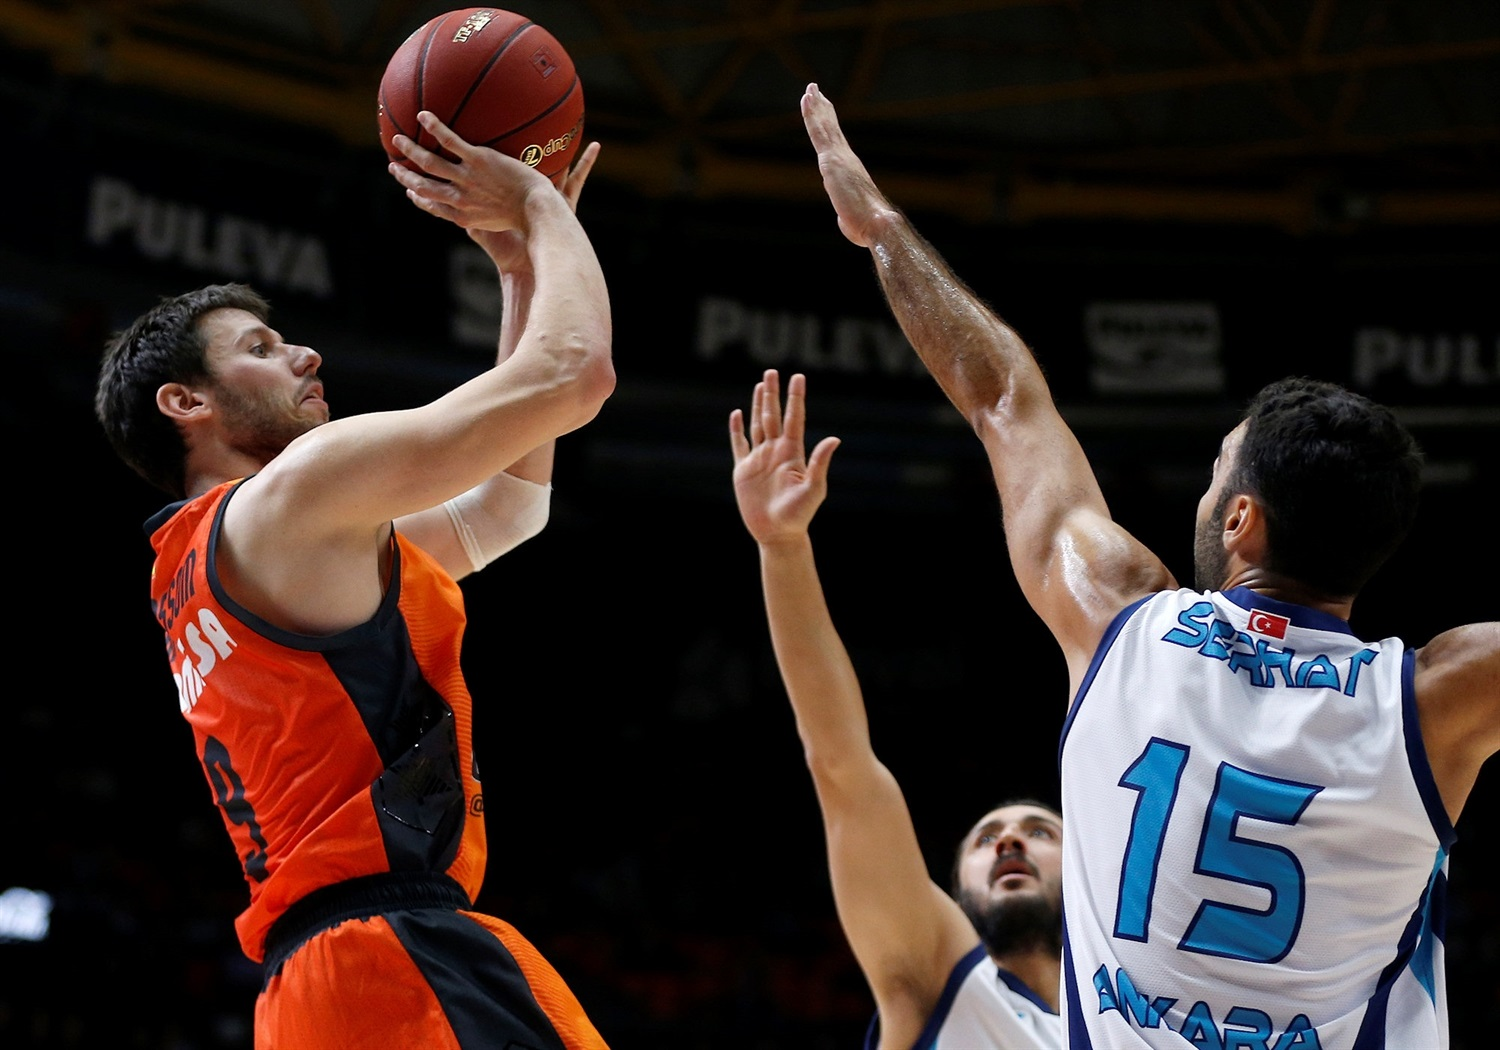 Sam Van Rossom - Valencia Basket (photo Valencia) - EC18